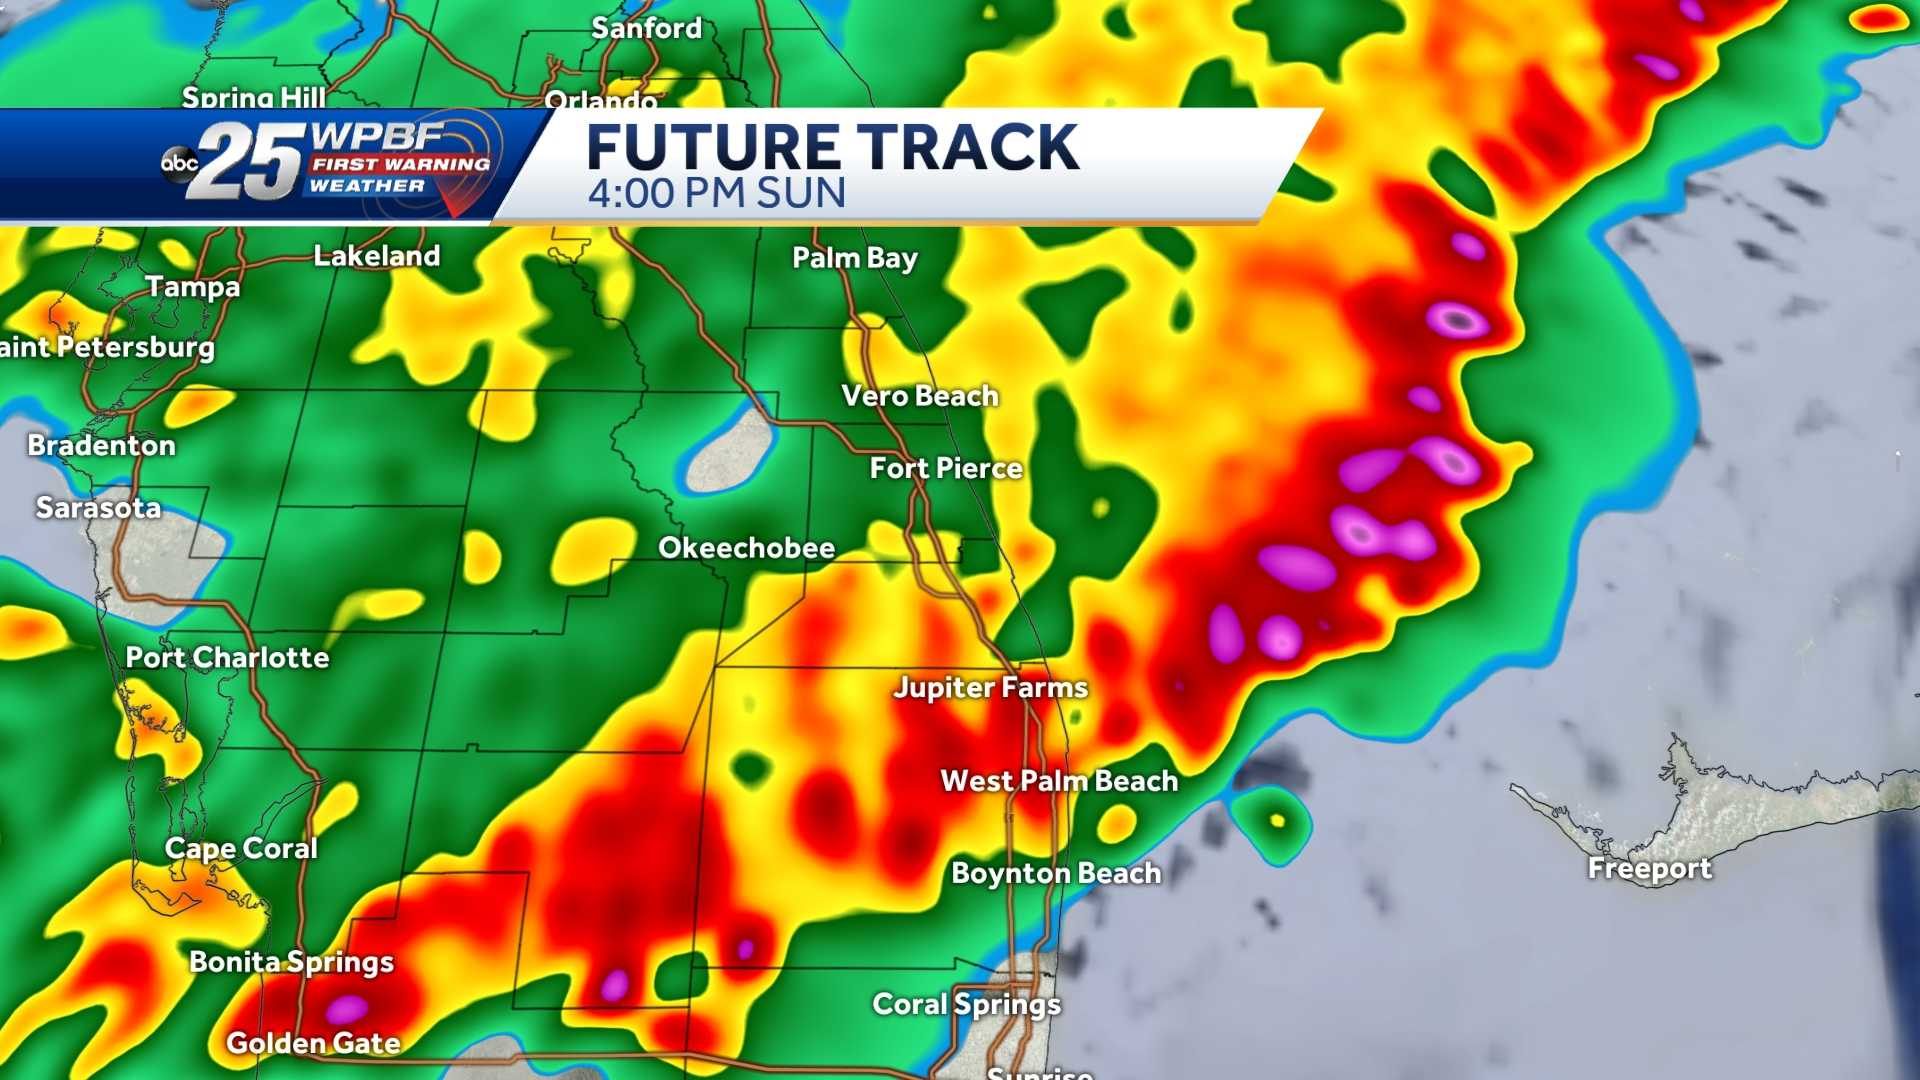 Potential for severe thunderstorms across South Florida expected early afternoon